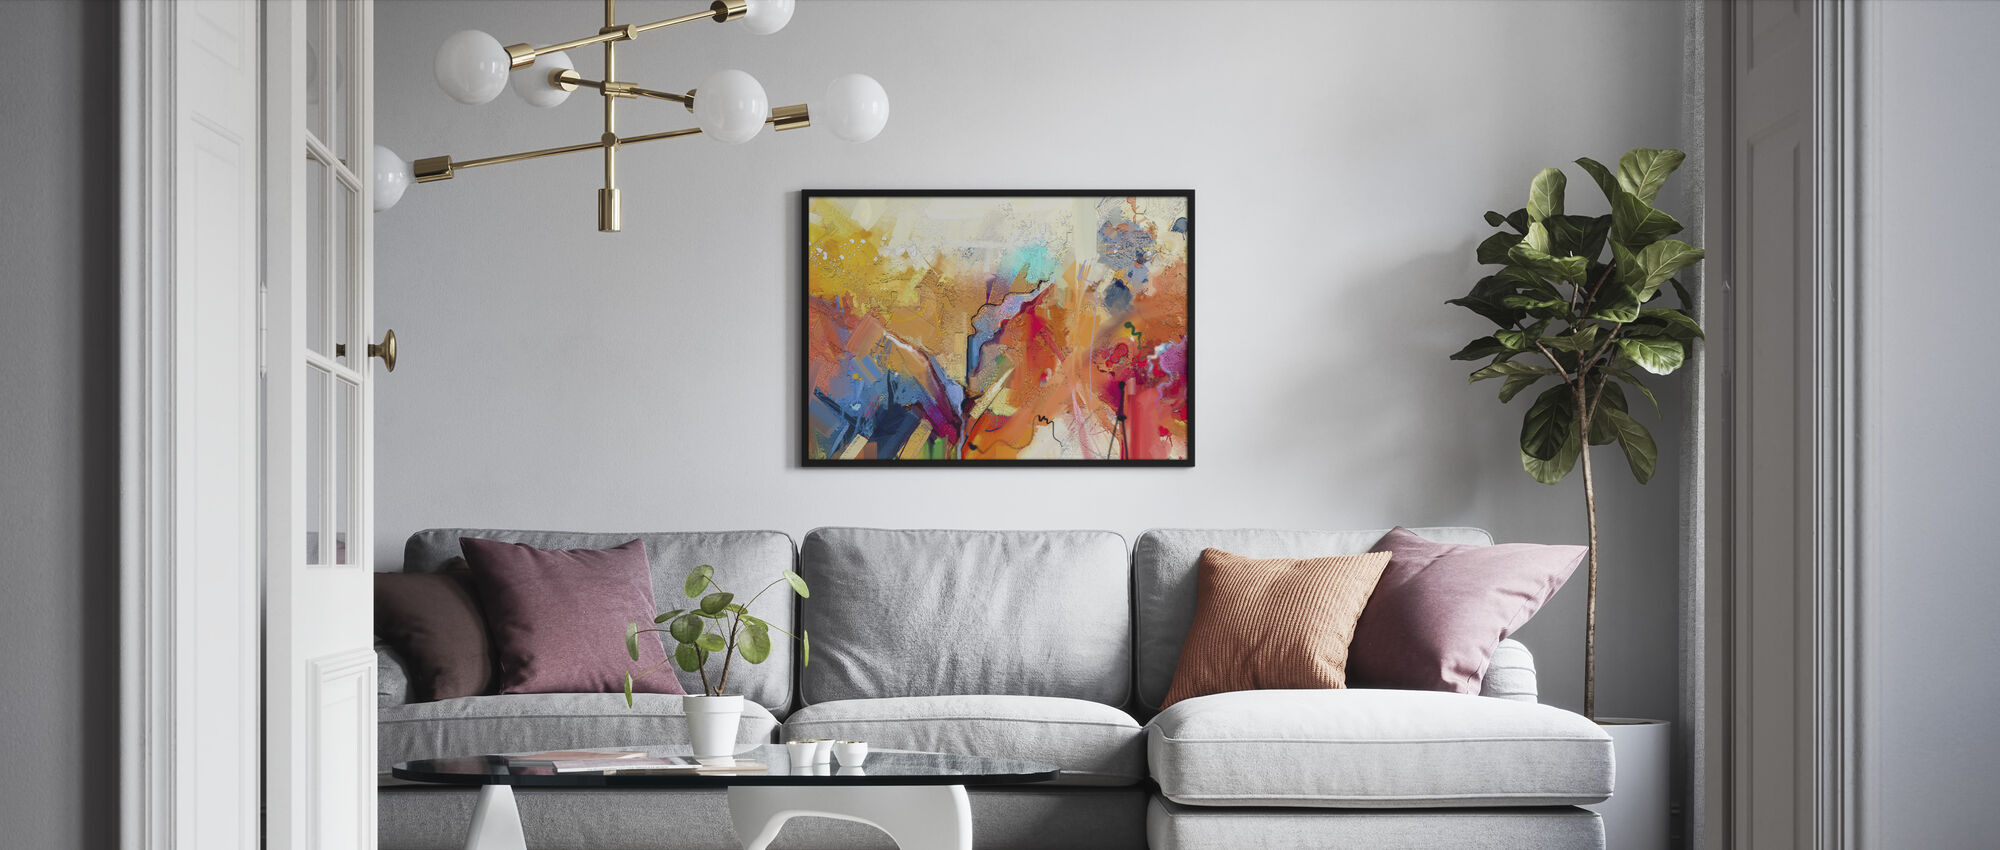 Colorful Abstract Painting - Framed print - Living Room